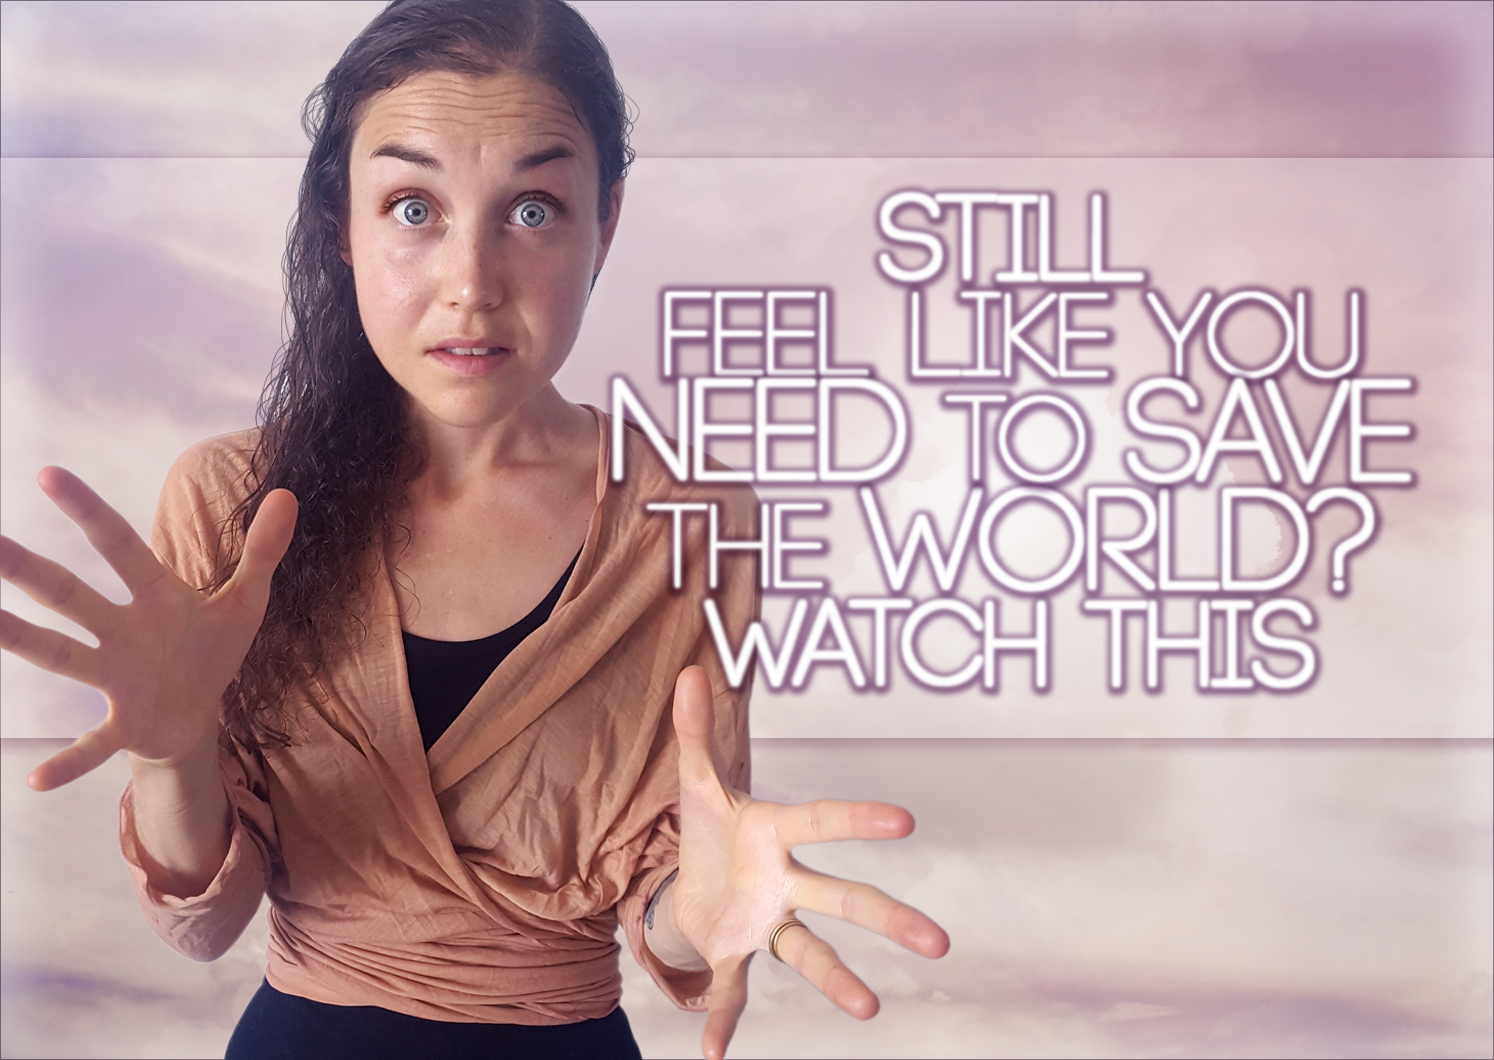 Still Feel Like You Need To Save The World? Watch This: